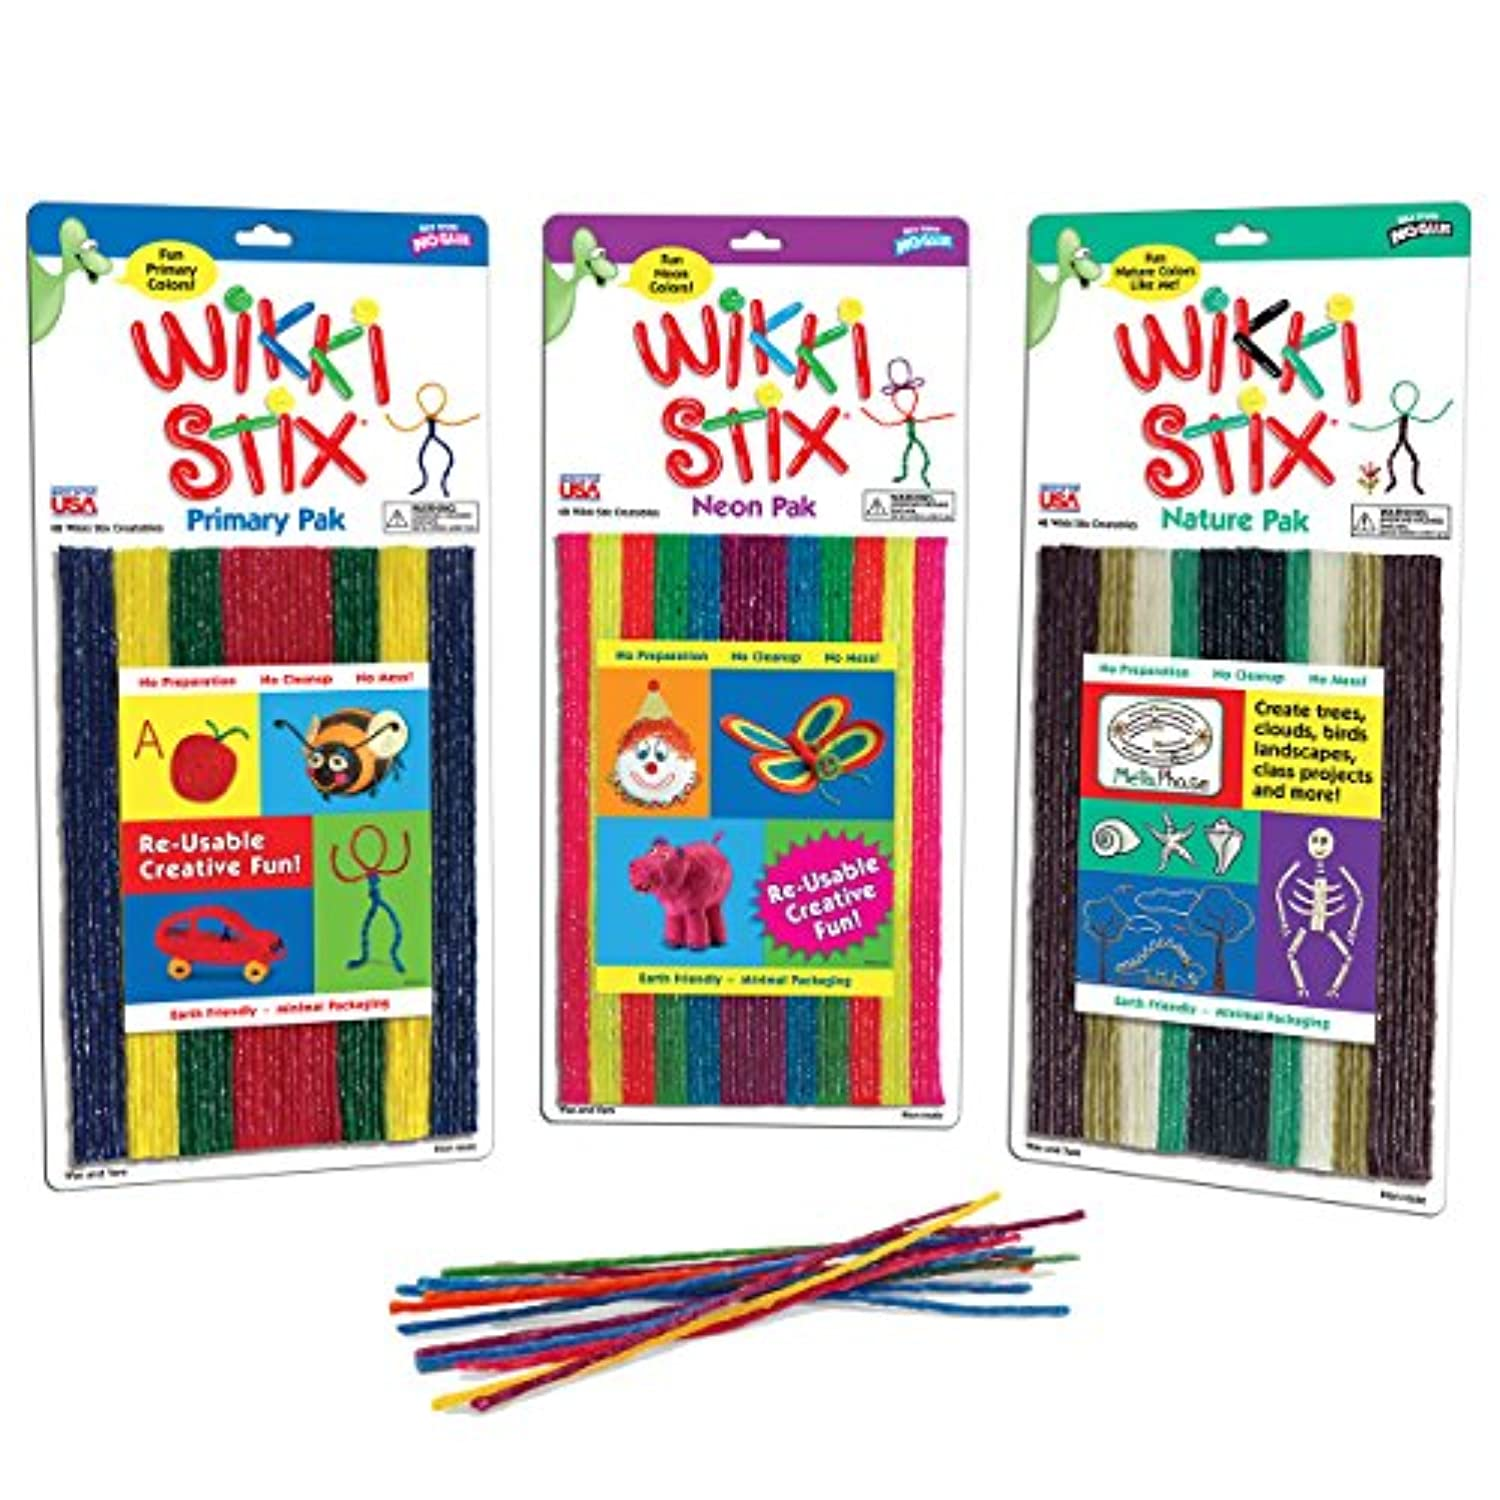 Wikki Stix Triple Play Pack by WikkiStix